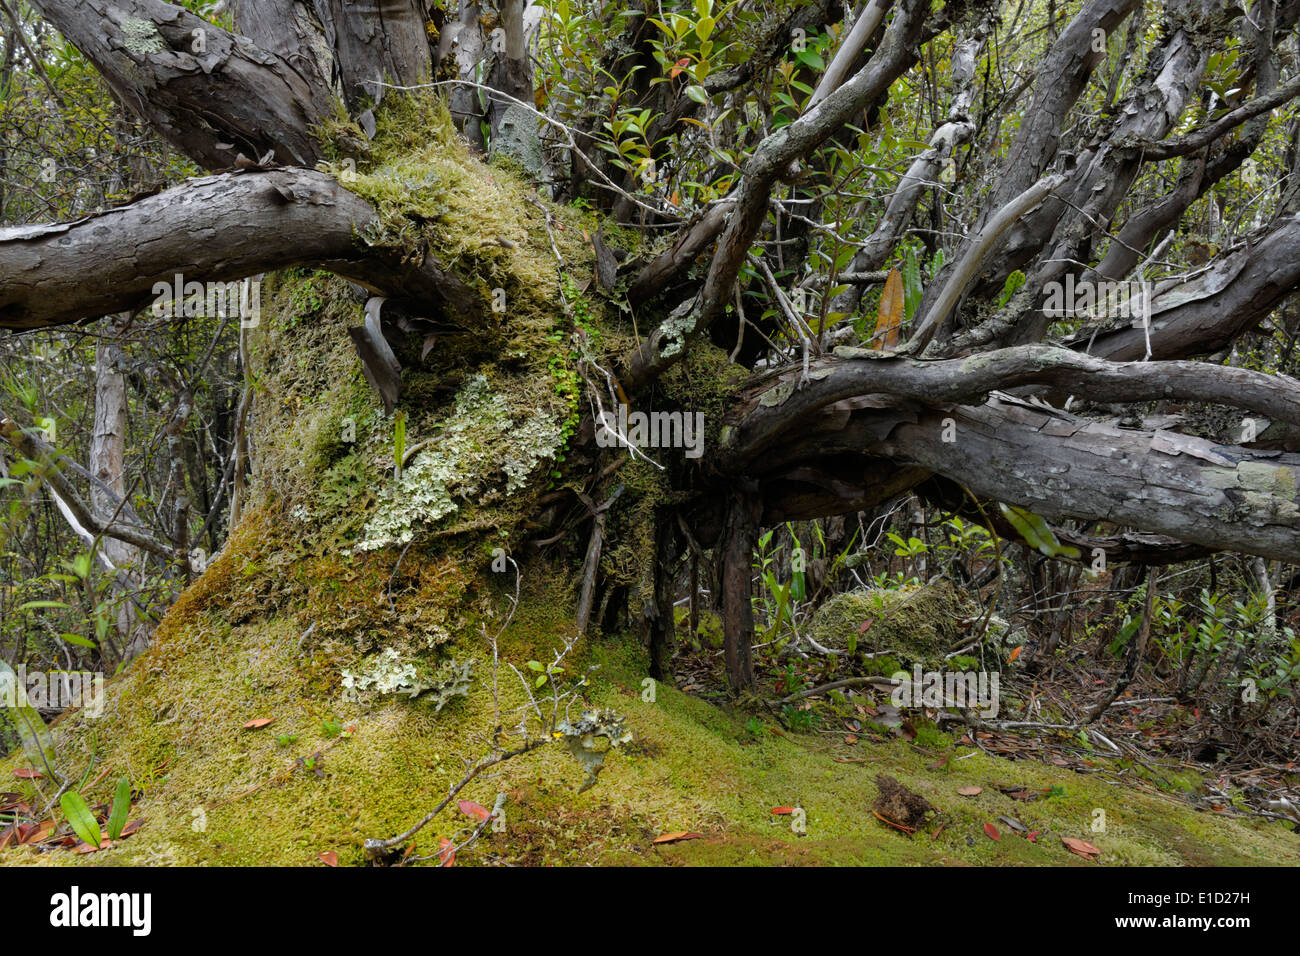 Sub-Antarctic tree in forest on Enderby island. - Stock Image